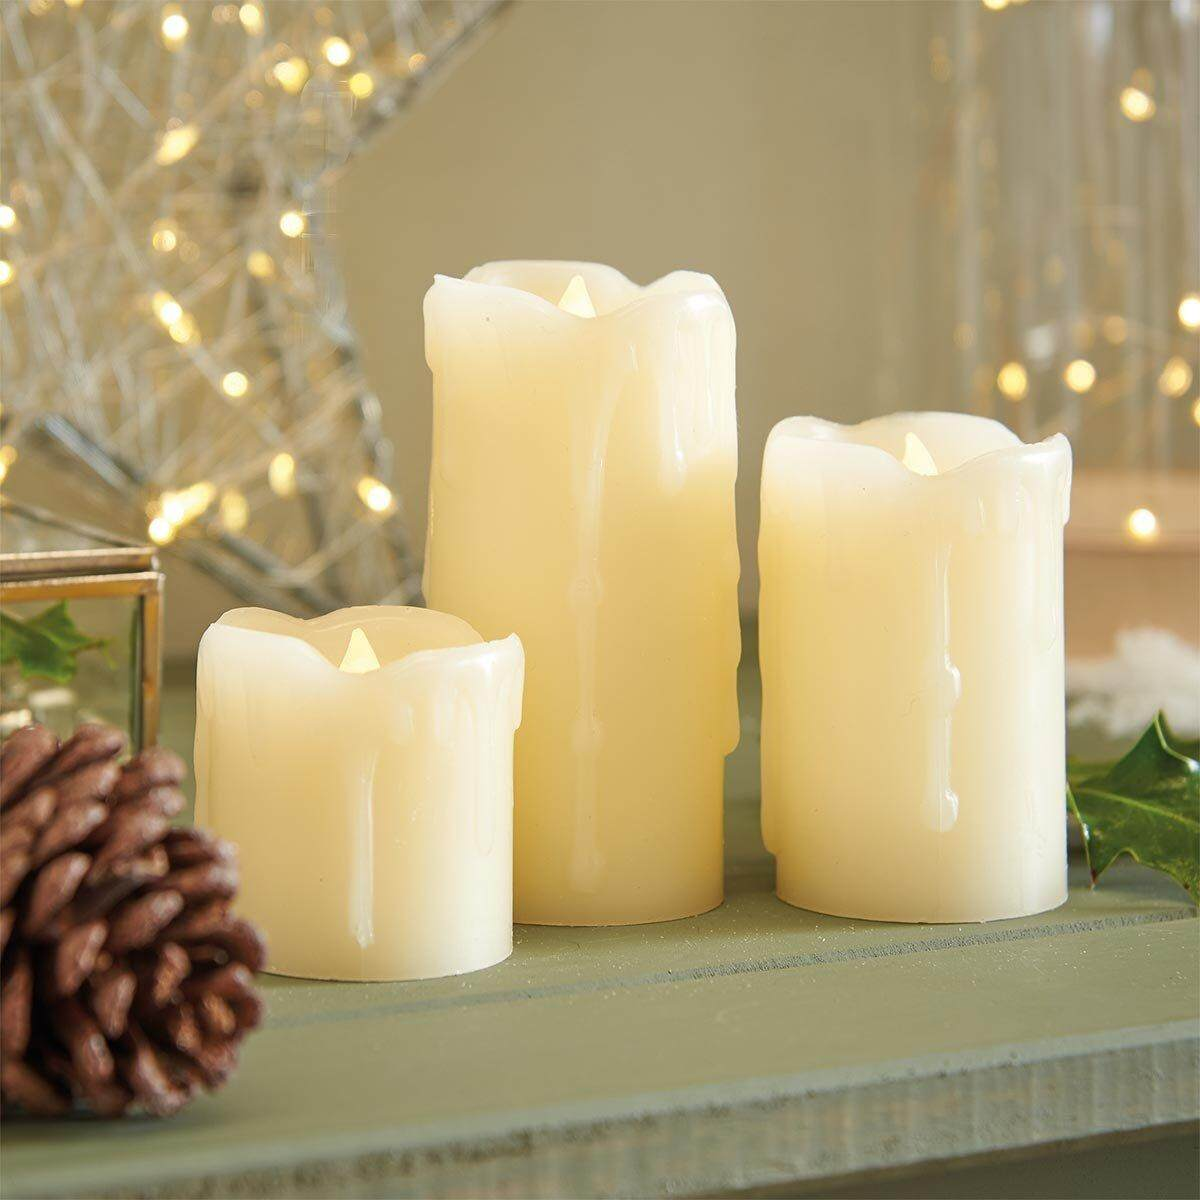 Cream Pillar Candles - Real Wax - 3 Pack - Flickering Flame - Warm White LED - Battery Operated by - intl